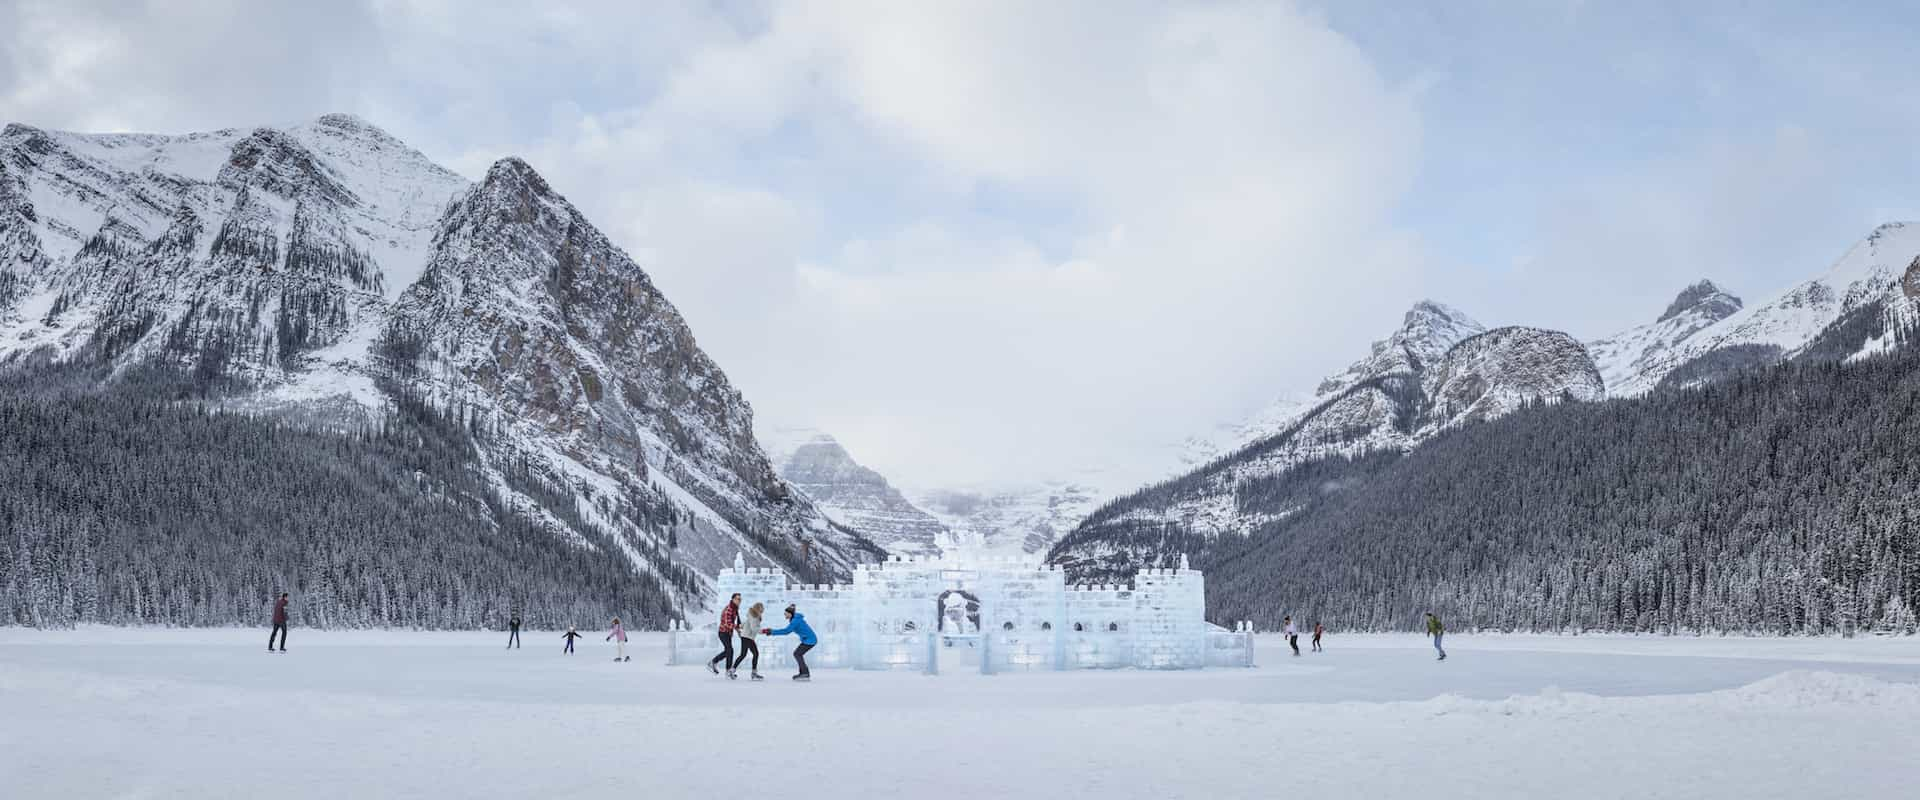 Ice skate on Lake Louise on the winter Discover Lake Louise Tour with Discover Banff Tours